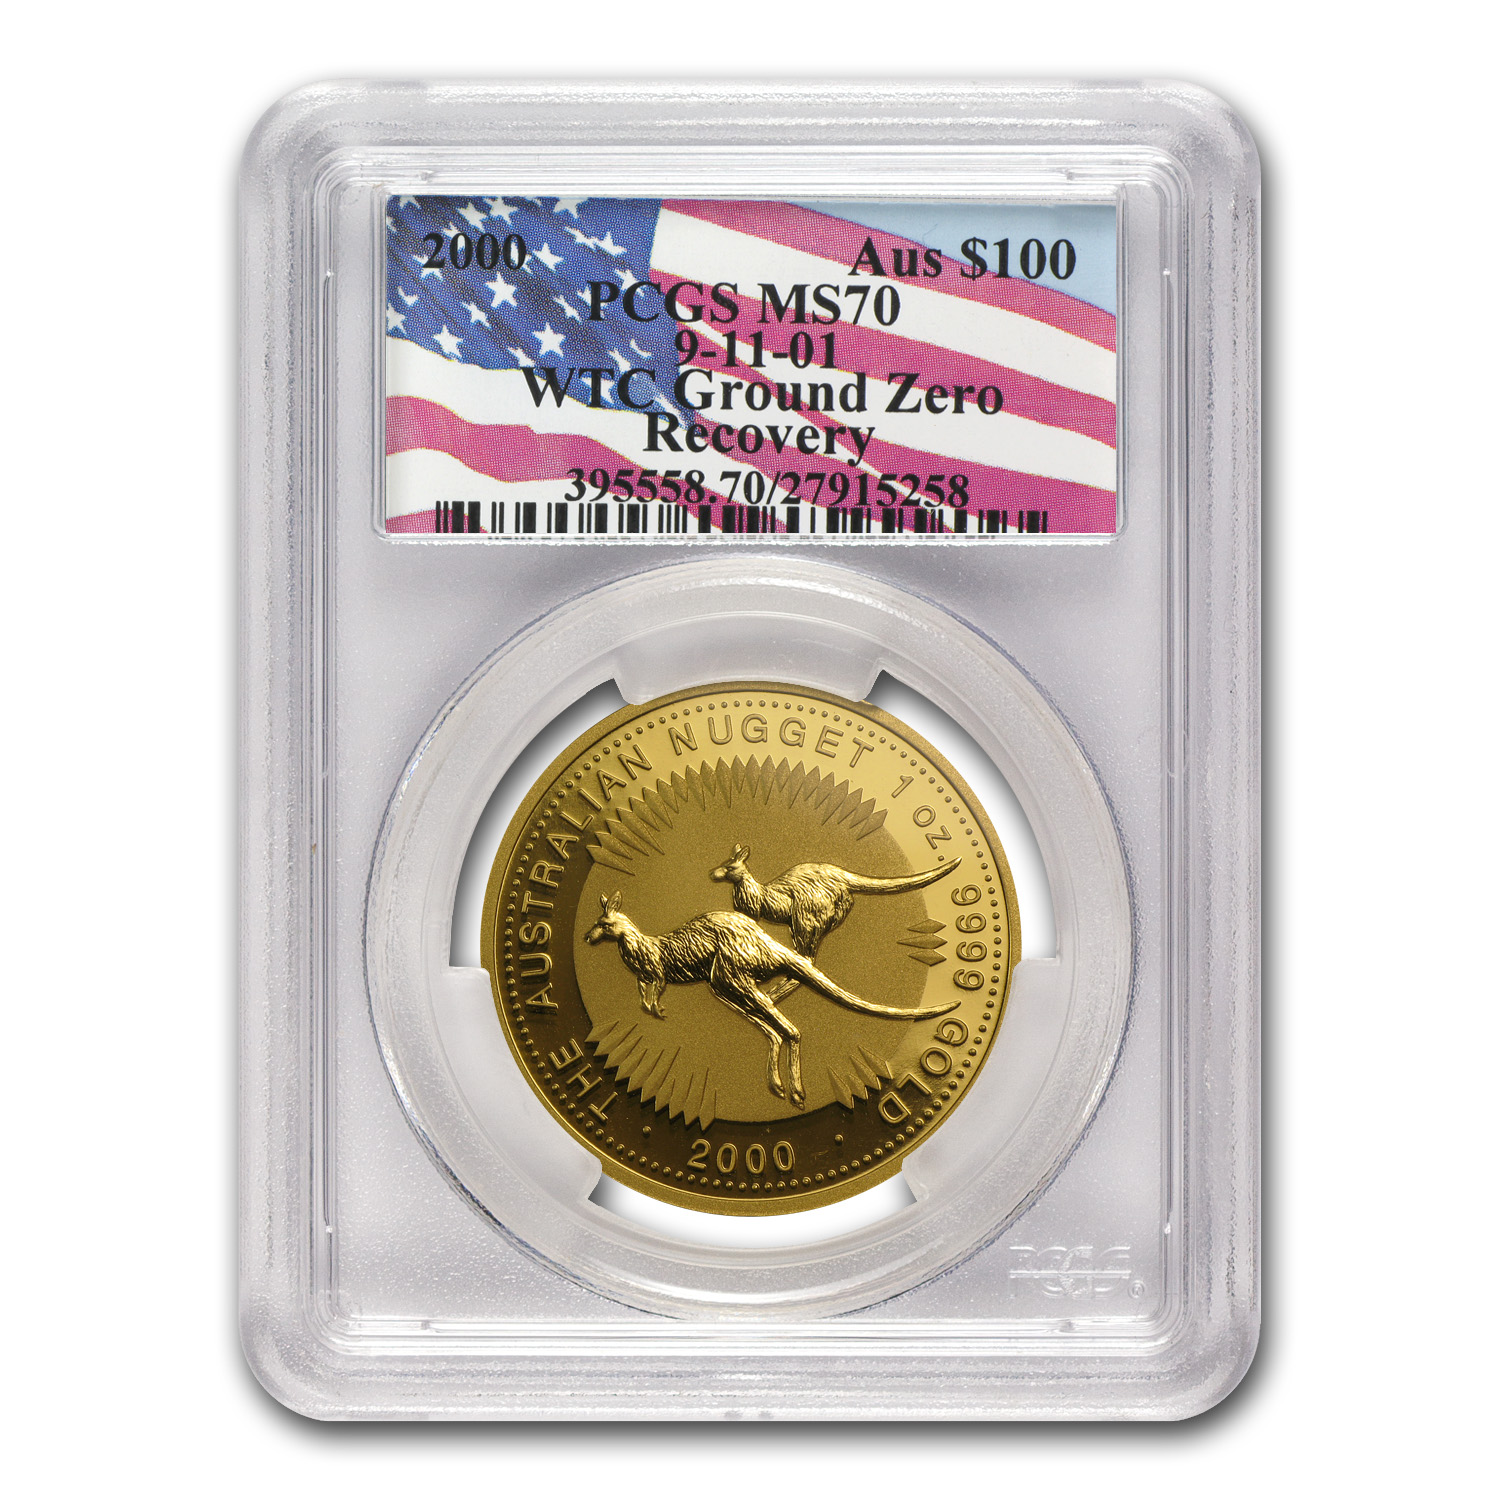 2000 Australia 1 oz Gold Nugget MS-70 PCGS (WTC Ground Zero)